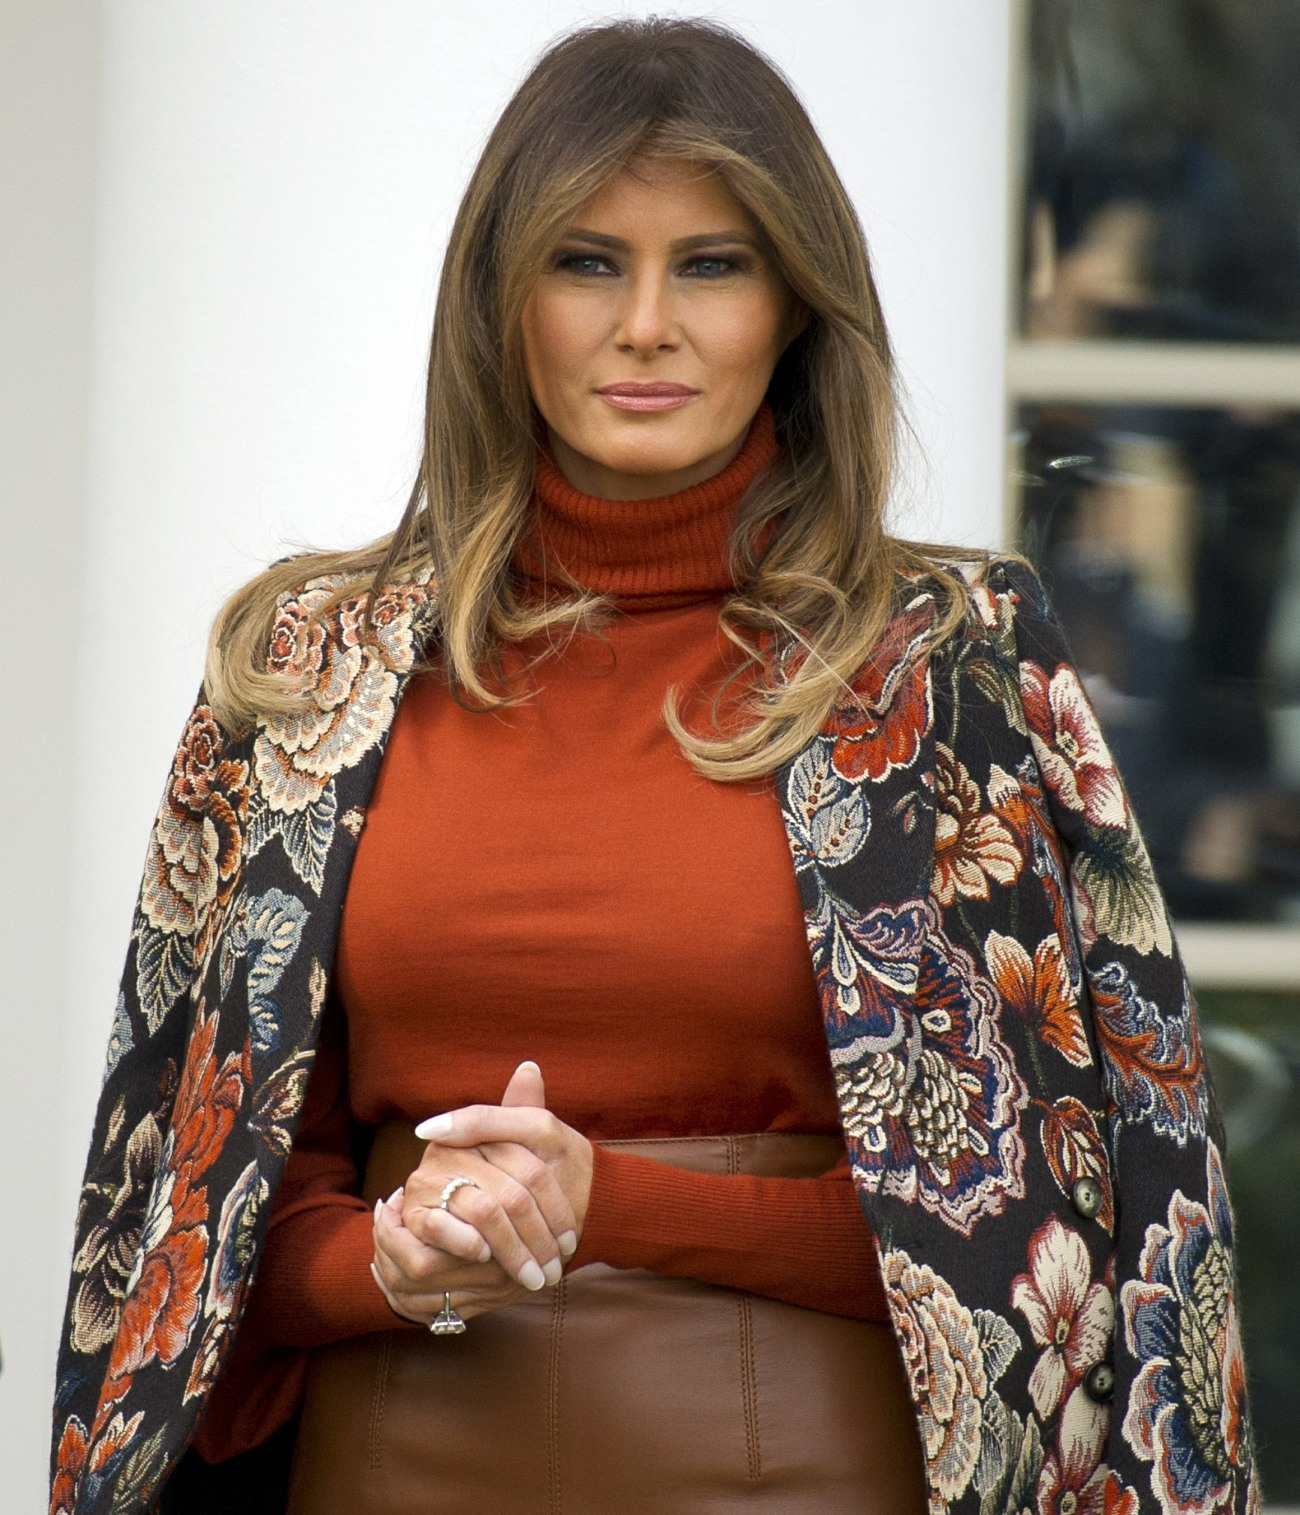 US President Trump and First Lady Melania Trump Participate in the 2017 Thanksgiving Turkey Pardon Ceremony